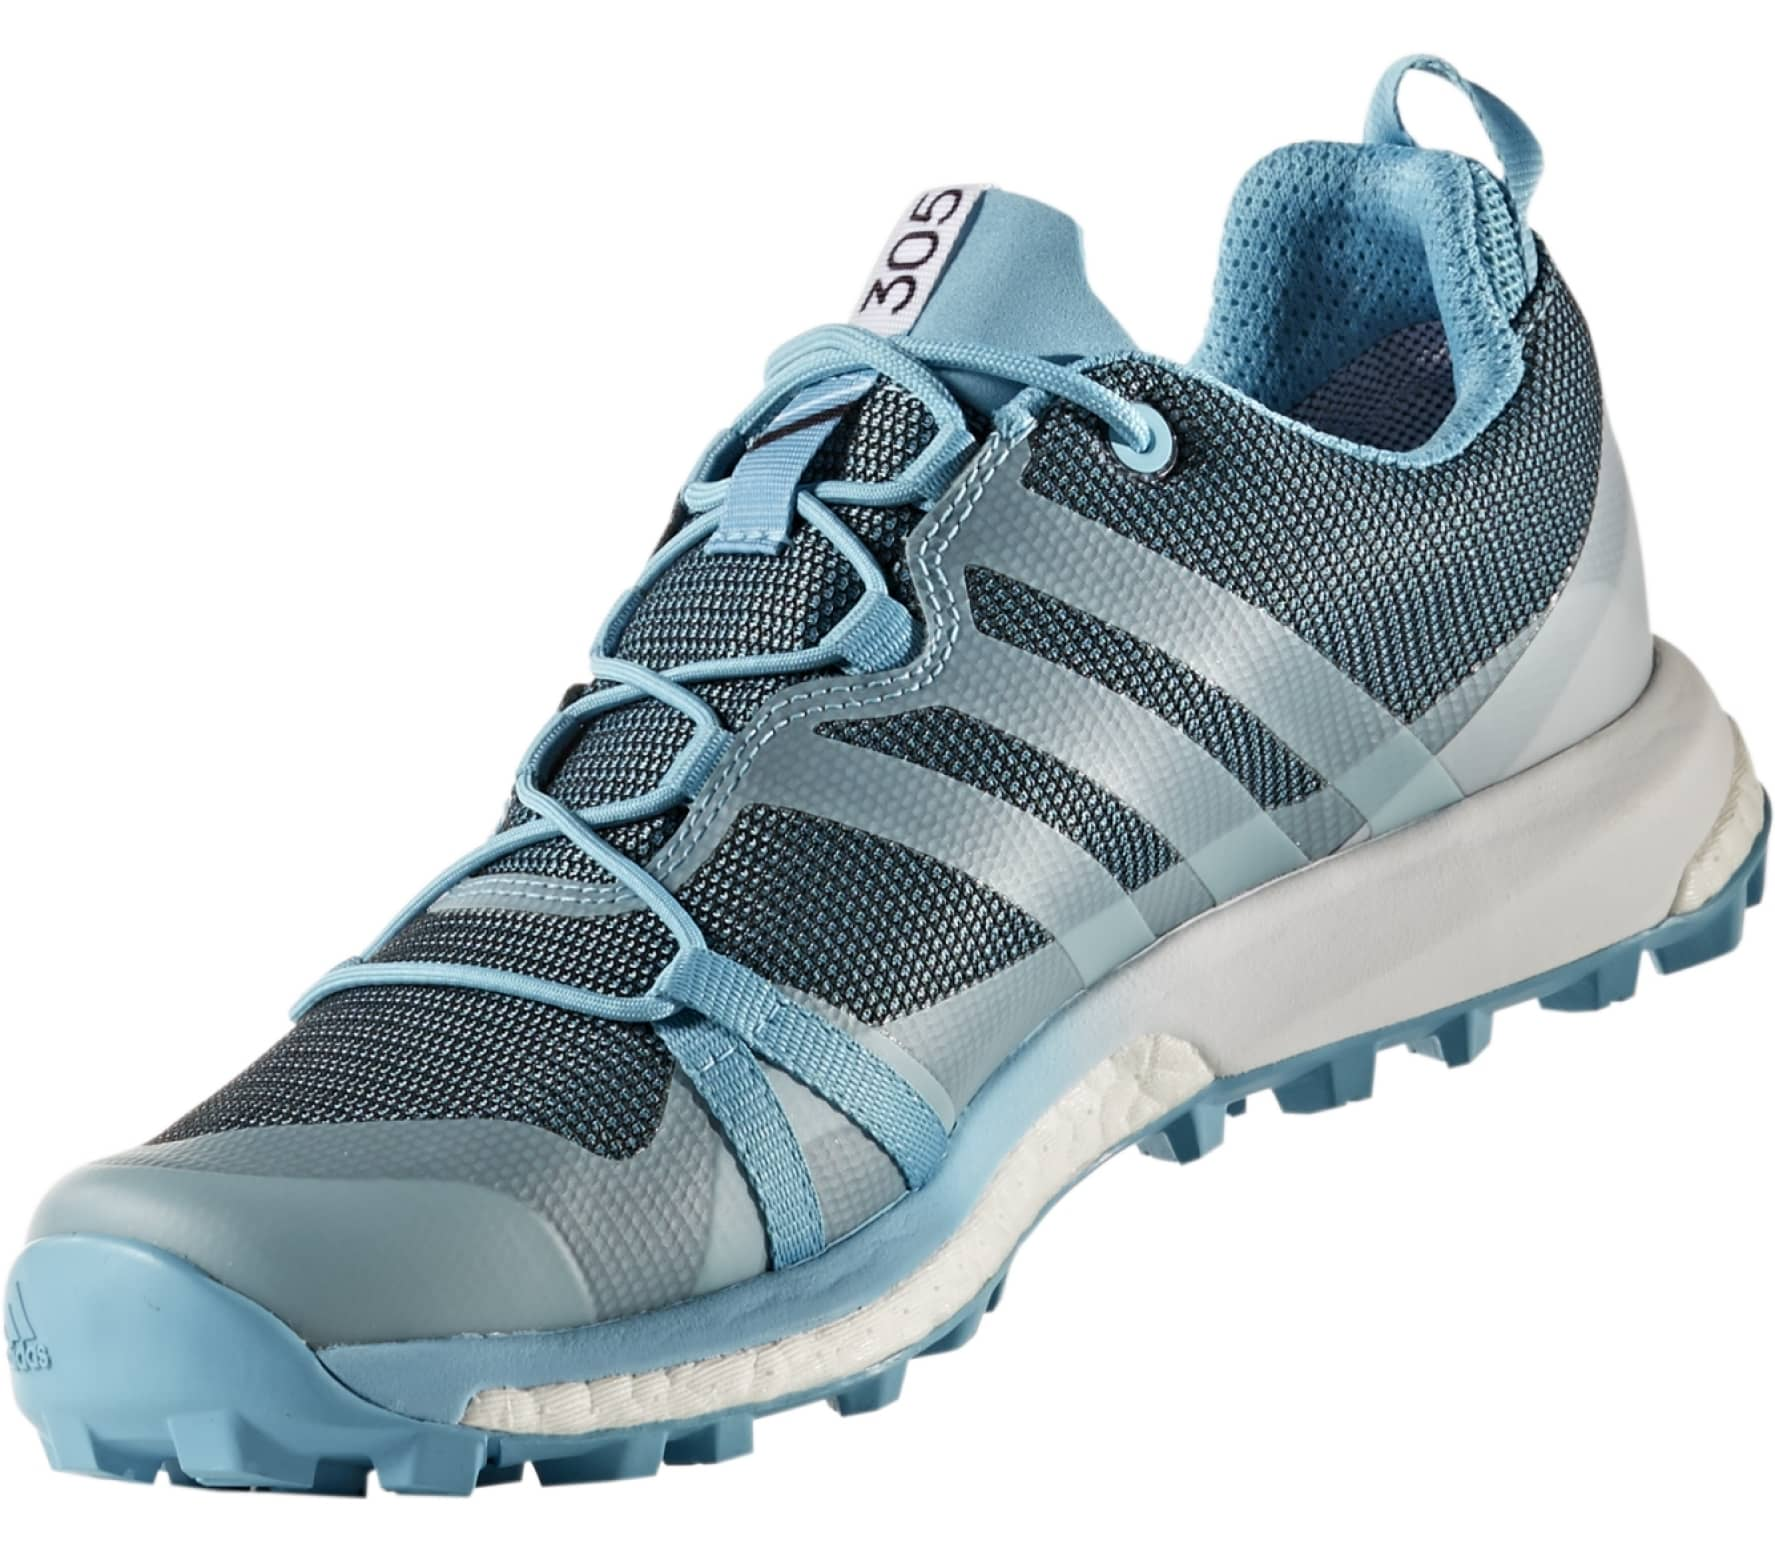 newest 95dca 3bf08 Adidas - Terrex Agravic GTX womens trail running shoes (bluewhite)